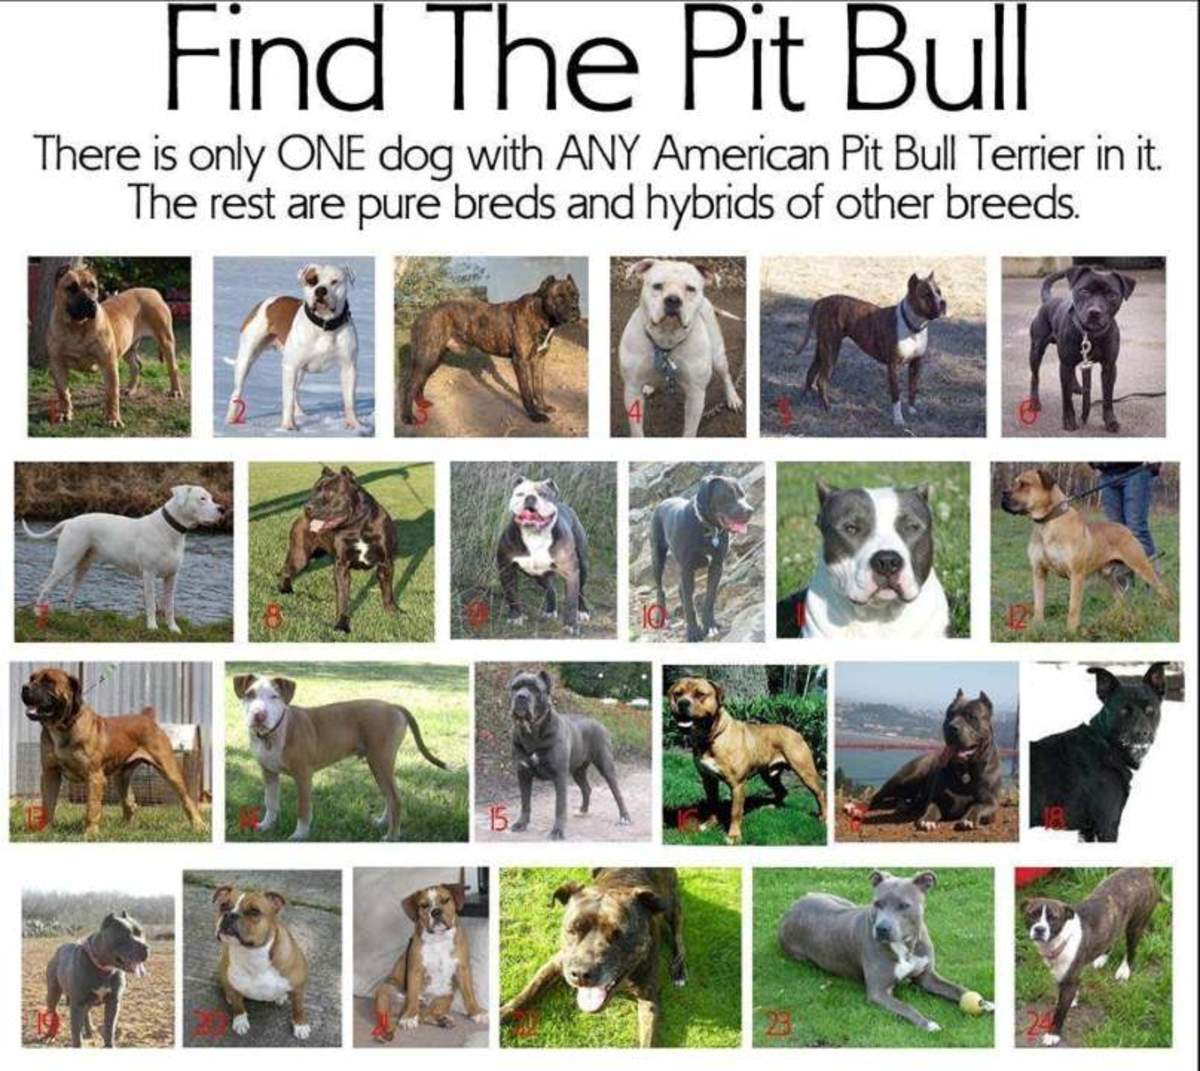 How many people can find the pit bull?